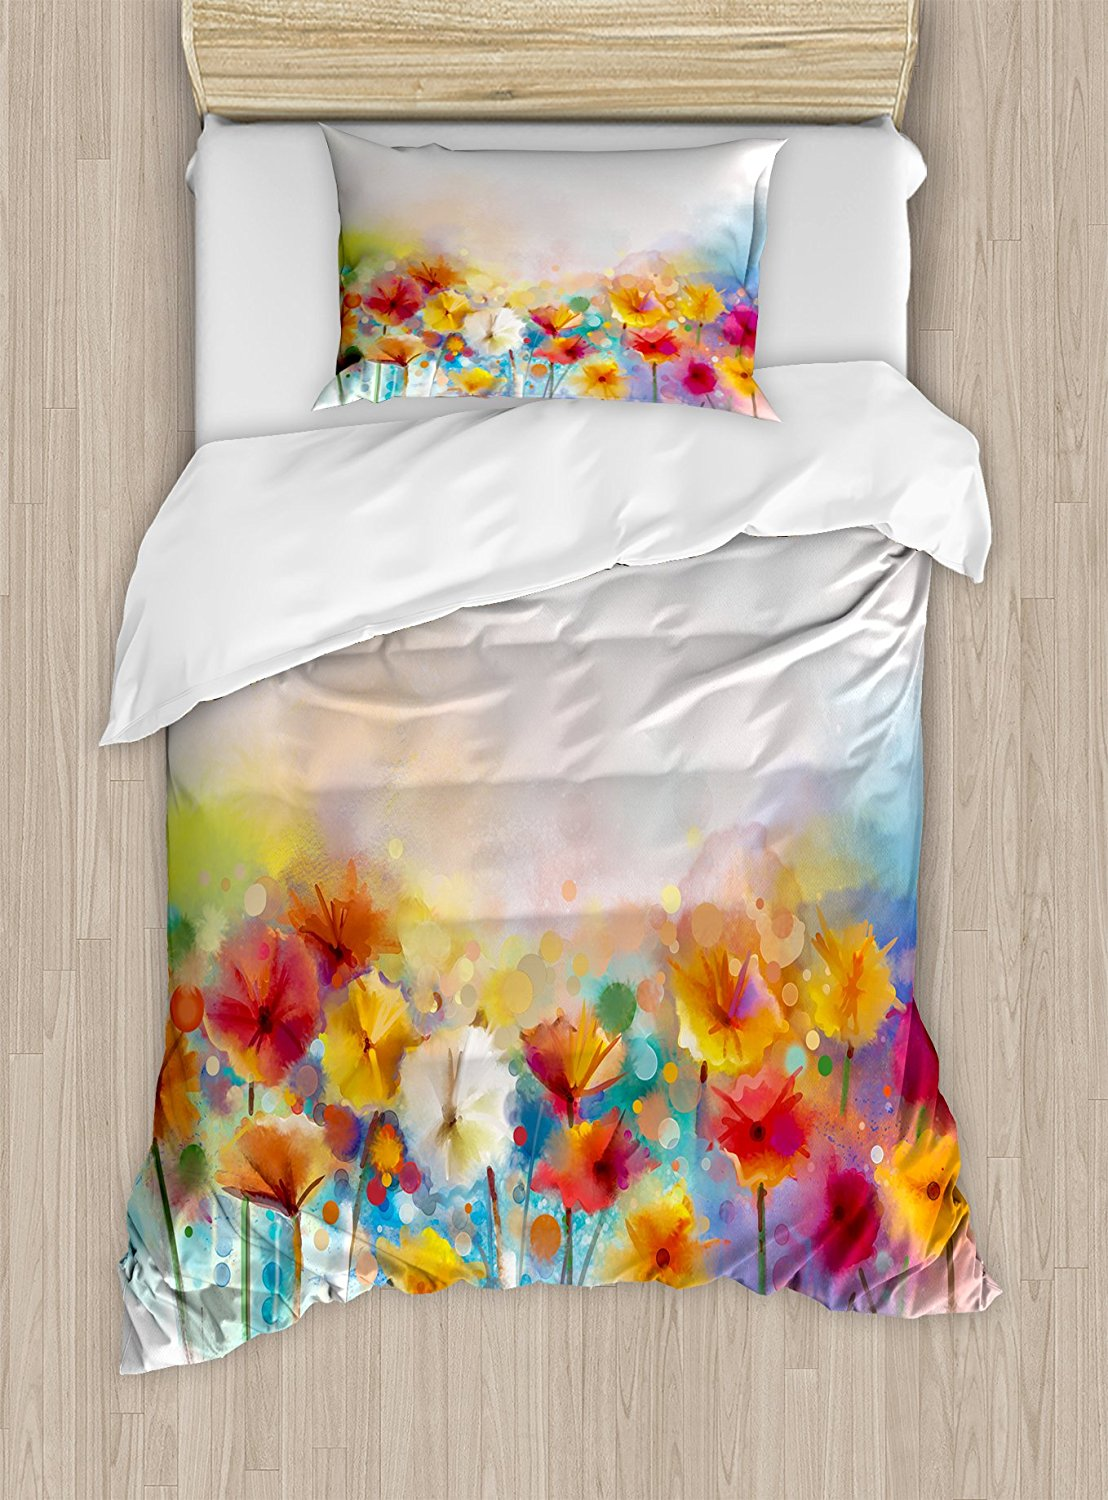 decor attractive white country and flower covers cover duvets duvet your for photos design quilt black floral online buy grey delighted pink wedding bedroom lovely flowery